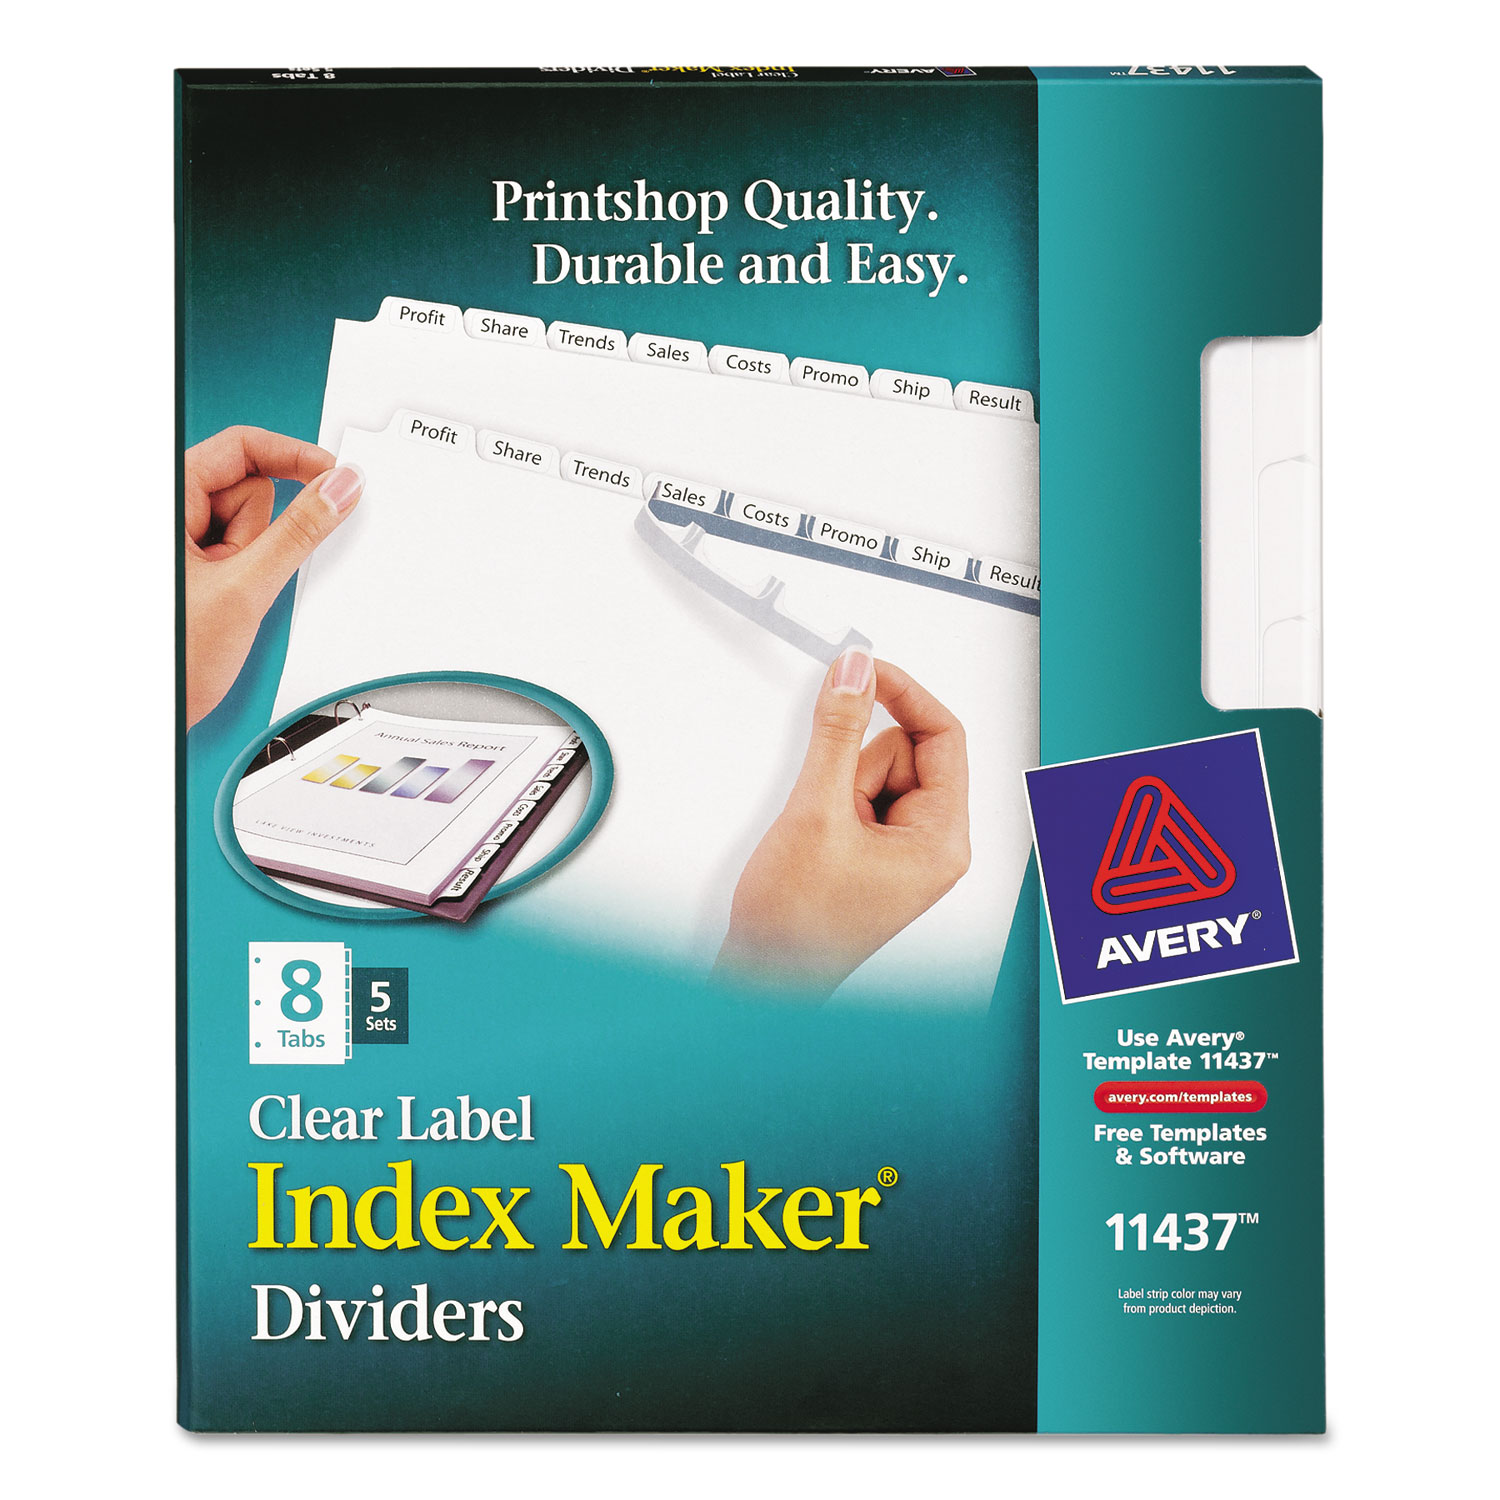 Print Apply Clear Label Dividers Wwhite Tabs By Avery Ave11437